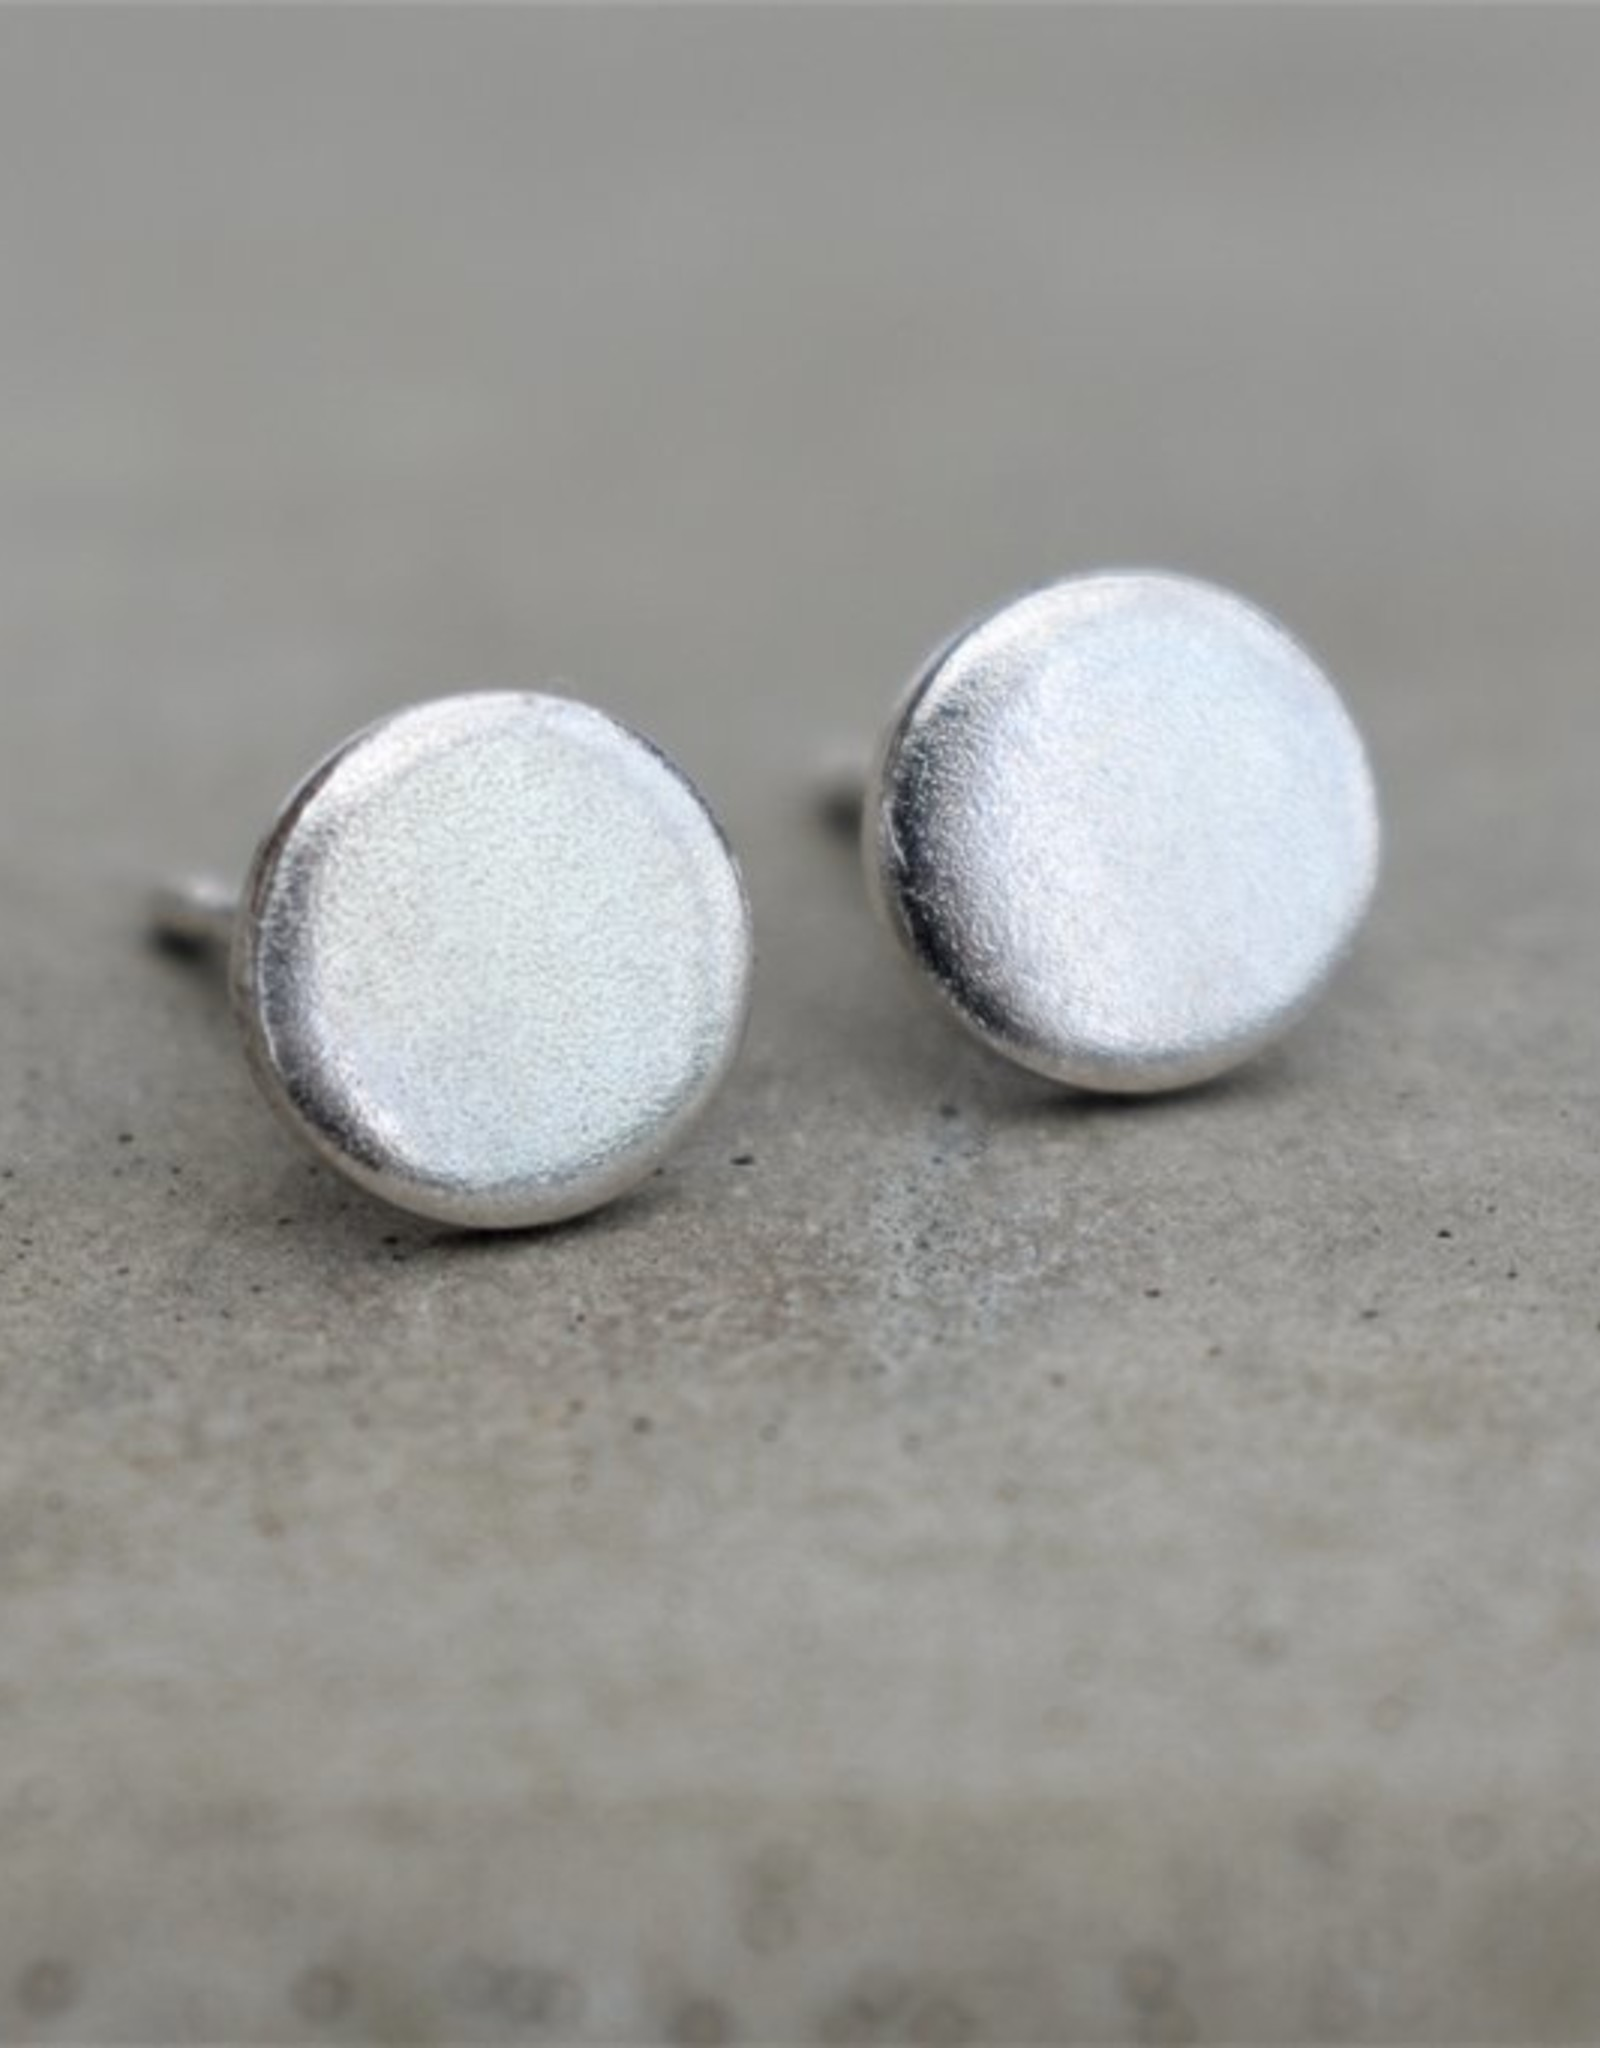 Taer Jewellery Taer Jewellery 5mm Studs Frosted Siver